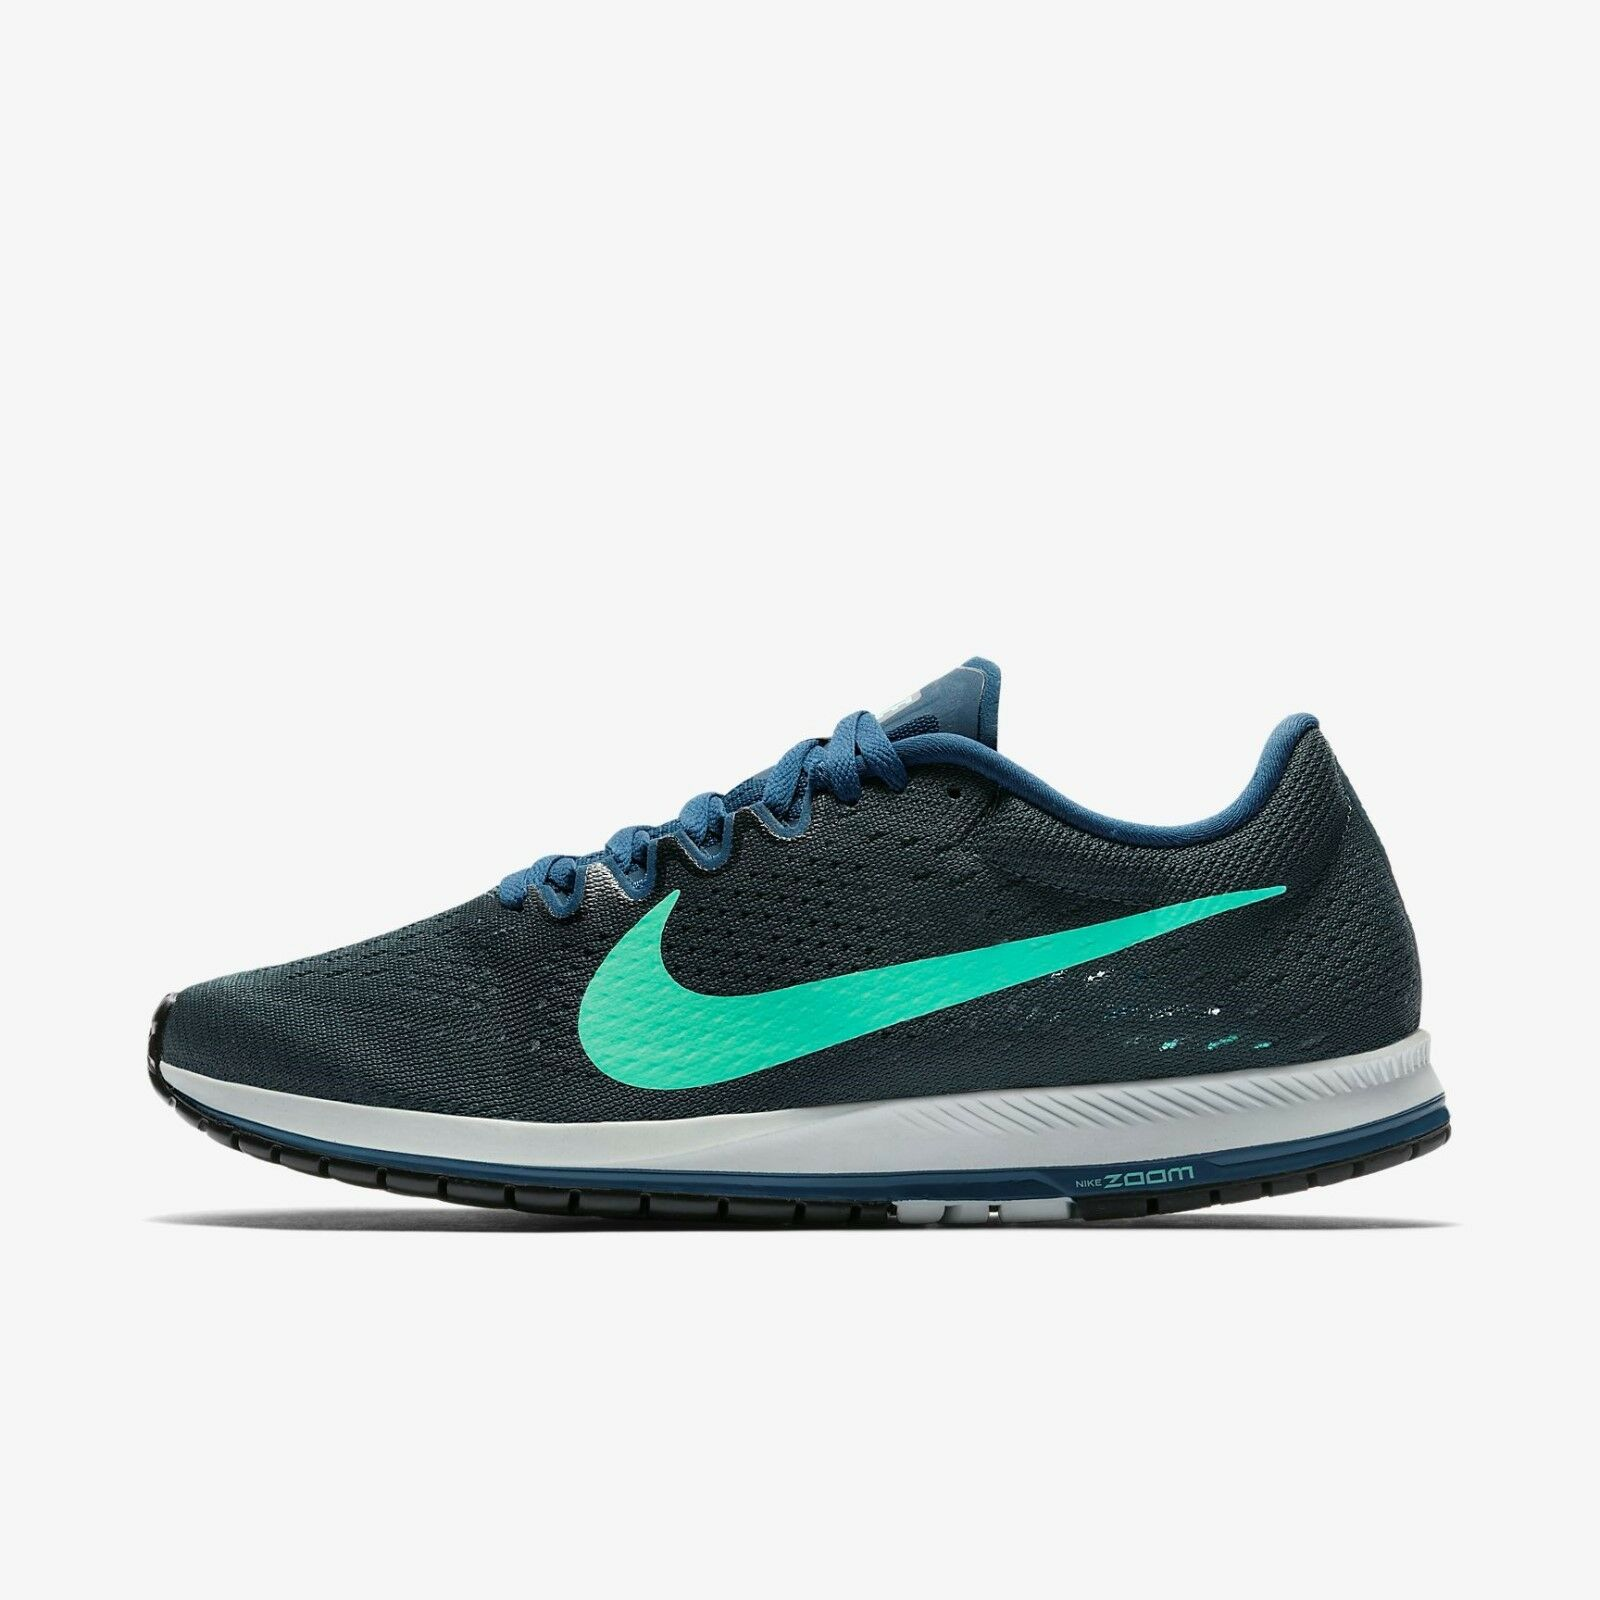 NEW Mens Nike Zoom Streak 6 831413 302 Running Shoes Deep Jungle/Blue Force Seasonal clearance sale